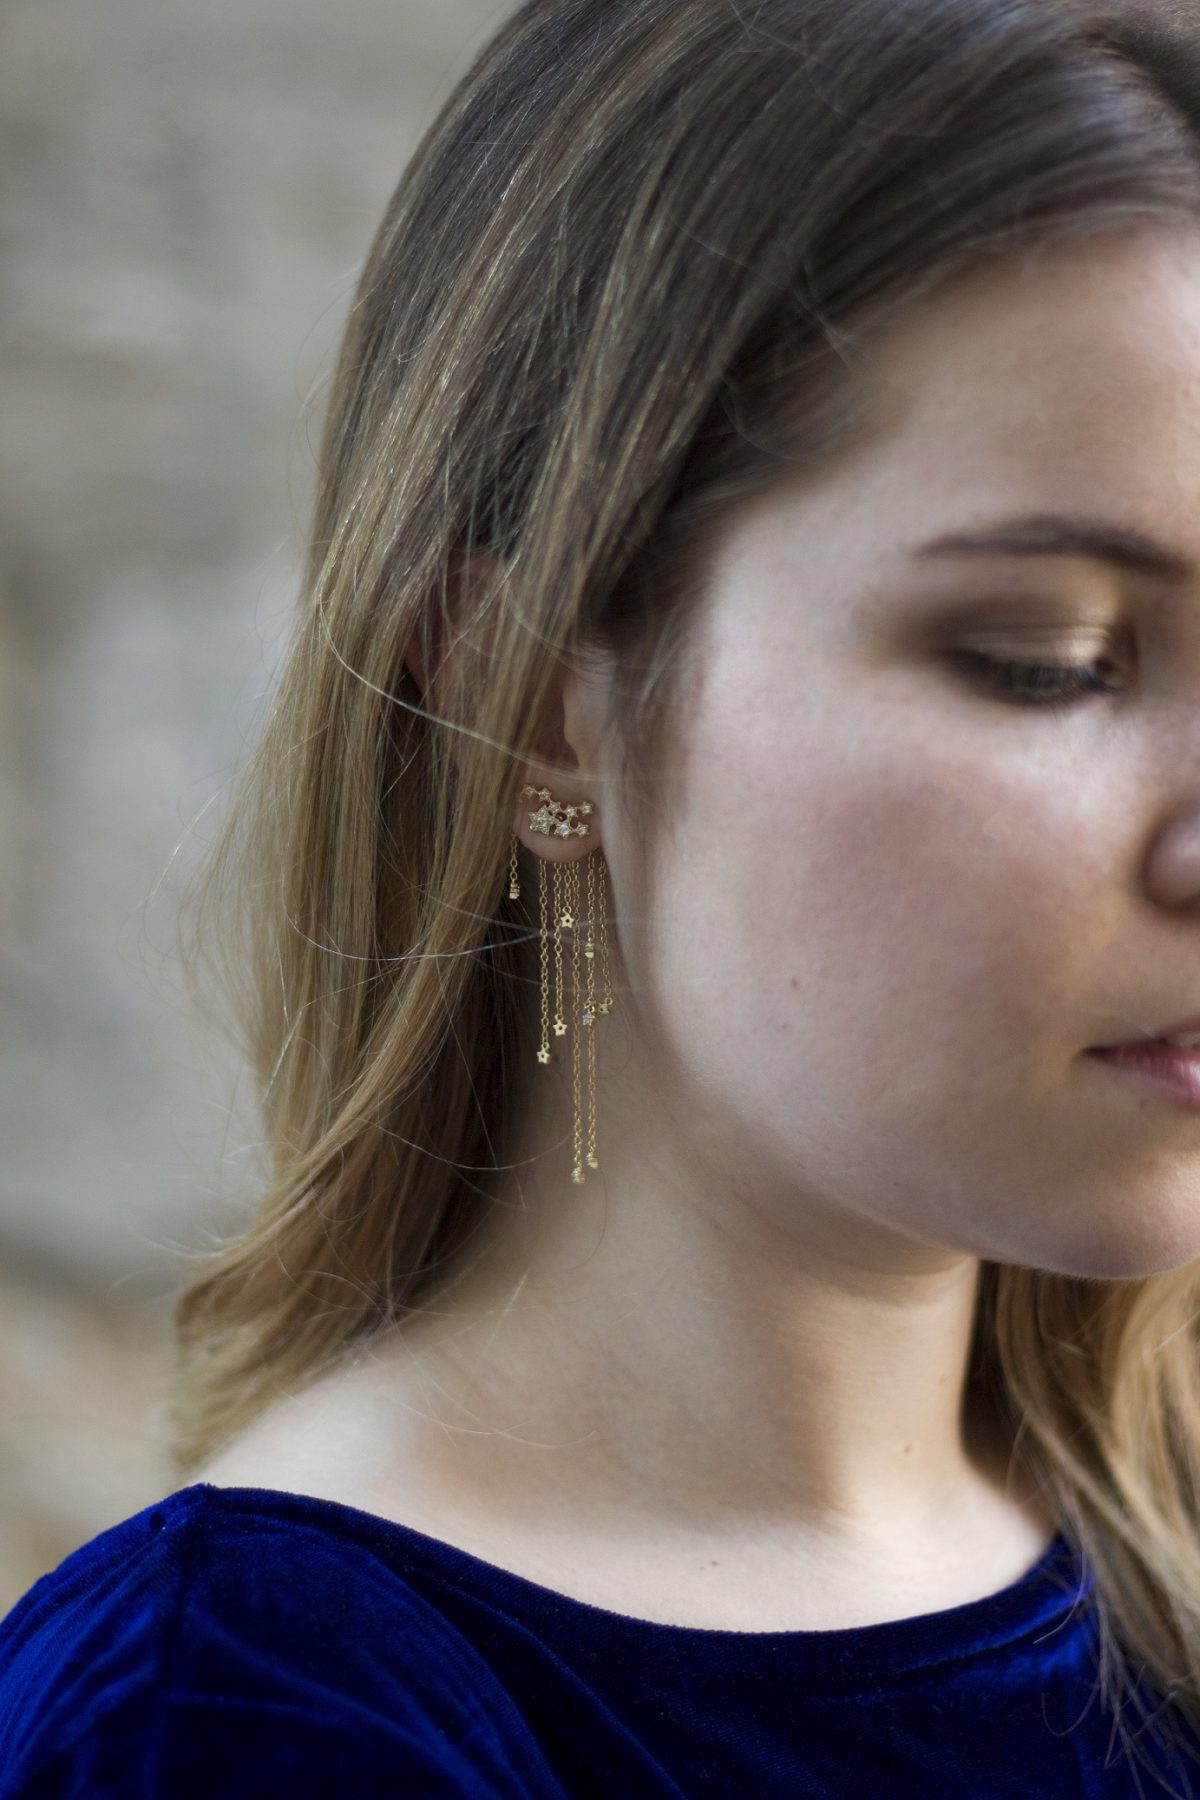 Kate and Kate star earrings Shahimi